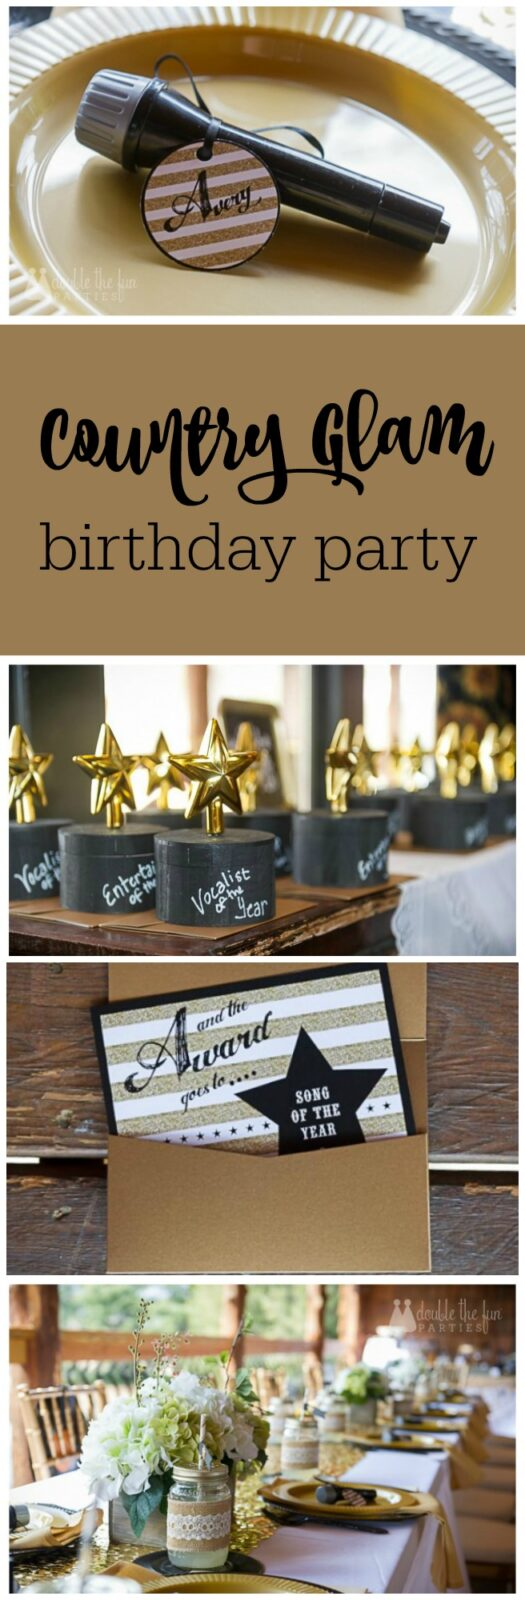 My daughter would love this - a country glam party with karaoke by The Party Teacher